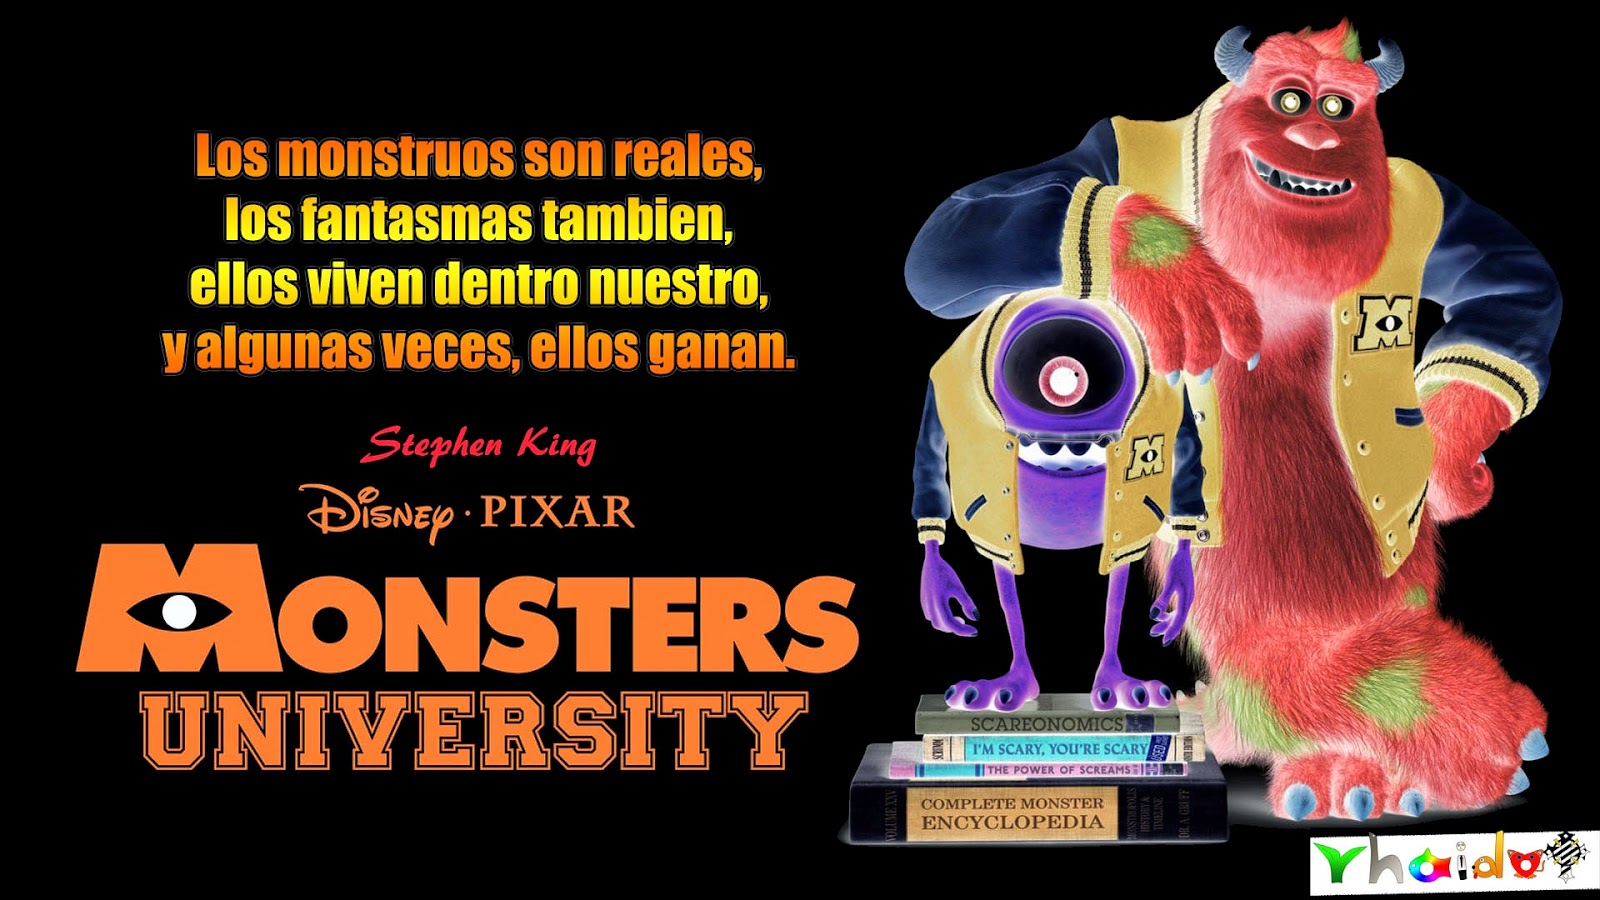 la pelicula Monsters University